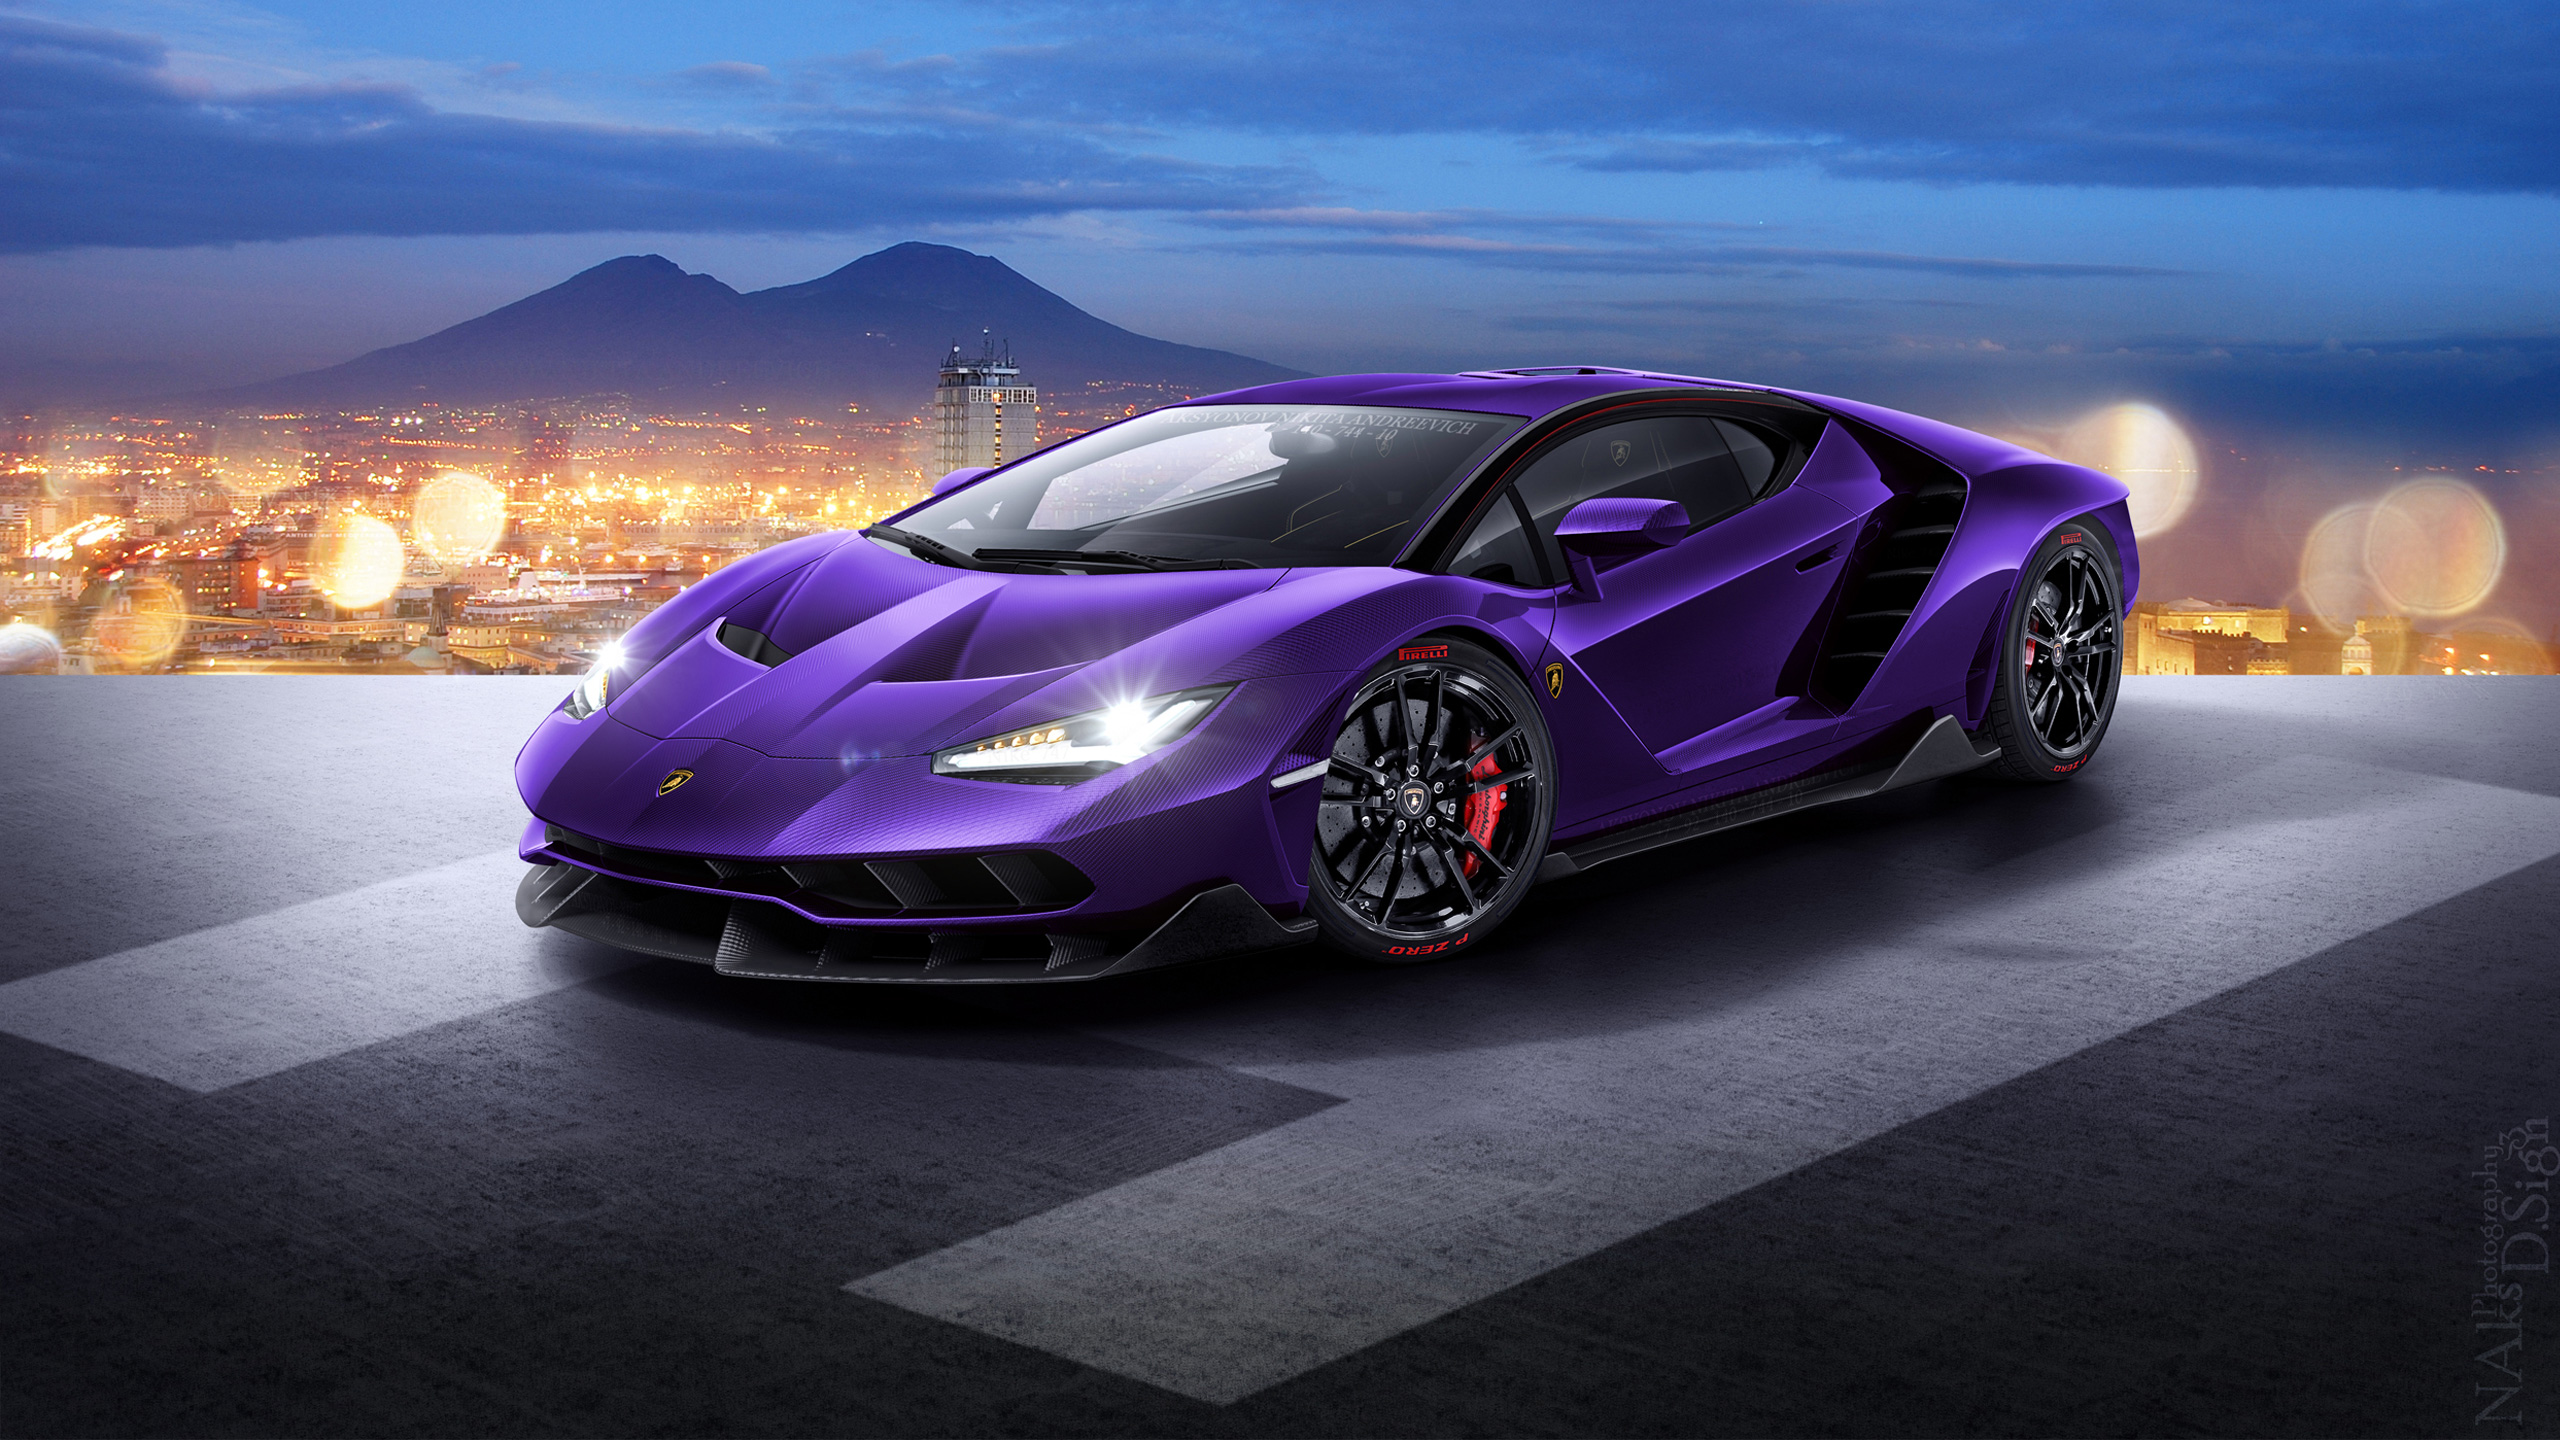 Lamborghini Gallardo 2018 Interior >> Lamborghini Centenario LP770 4 Wallpaper | HD Car Wallpapers | ID #6398